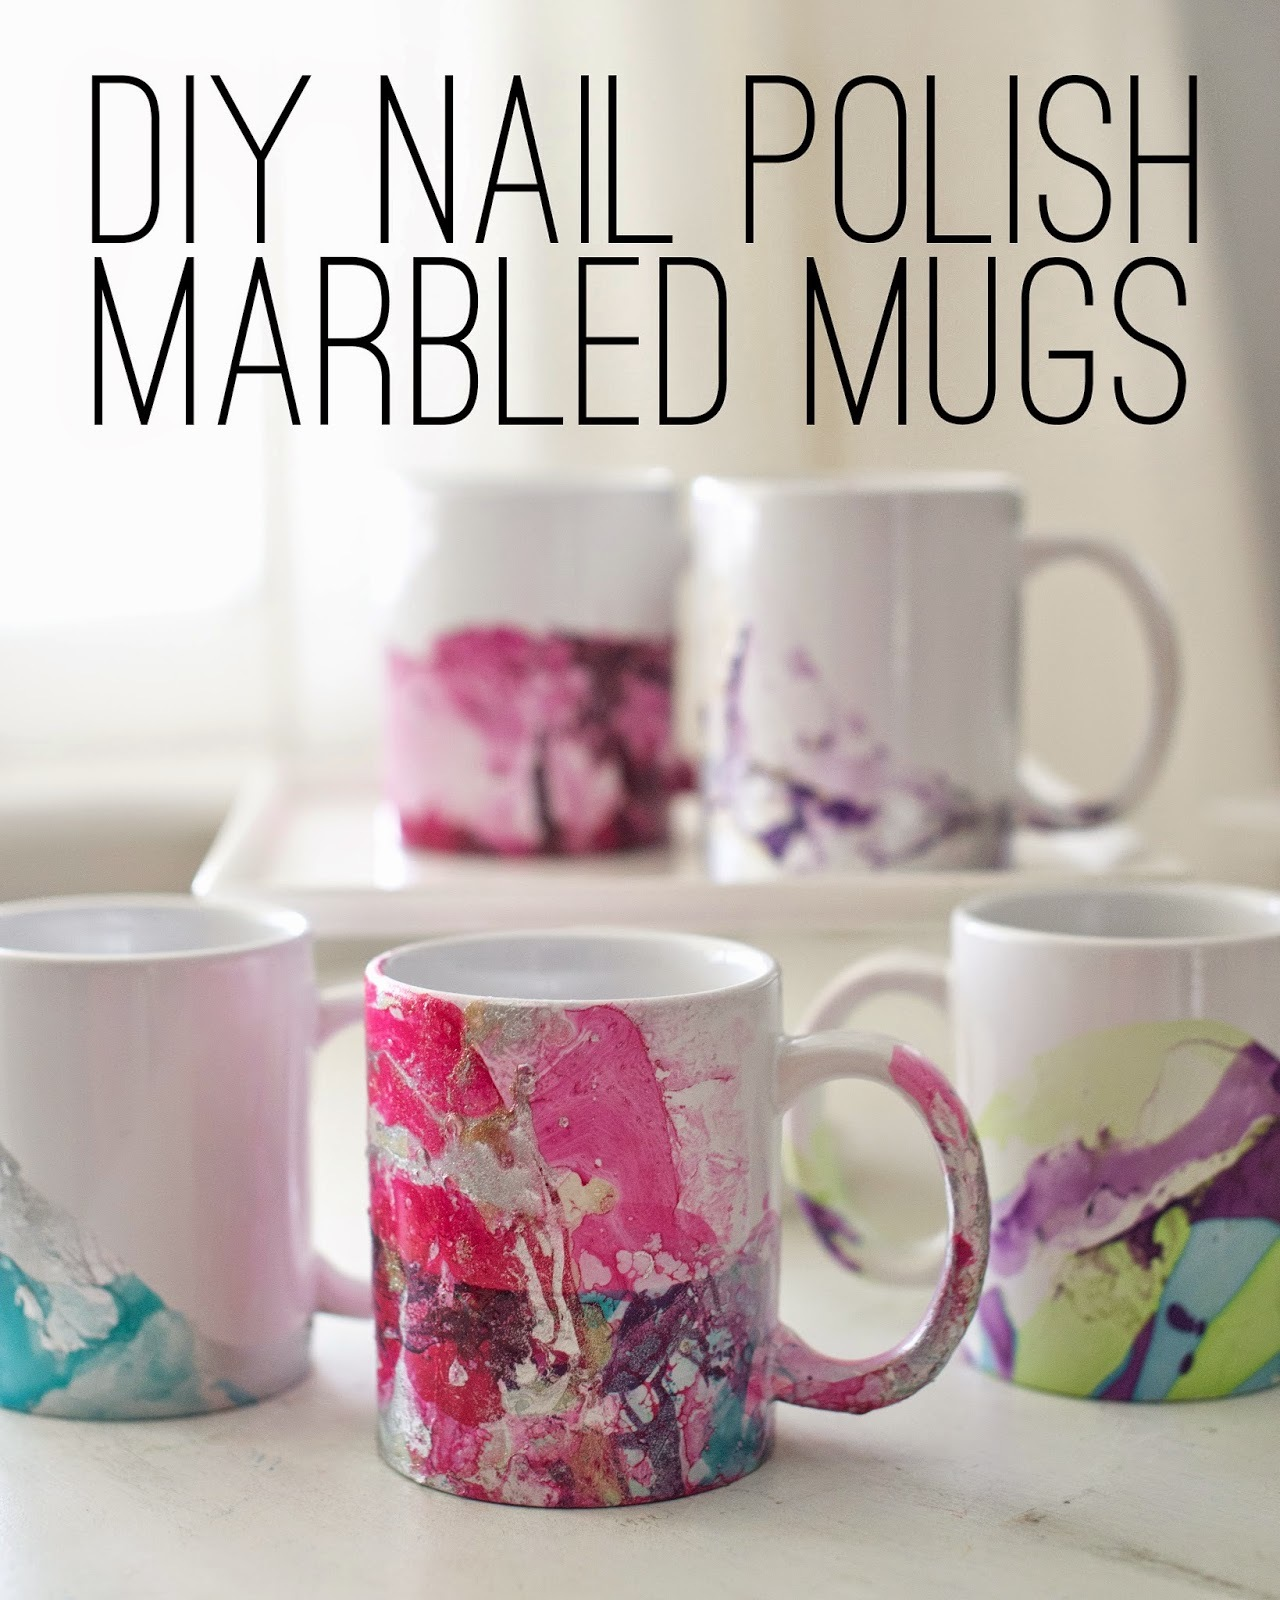 Nail polish marbled mugs